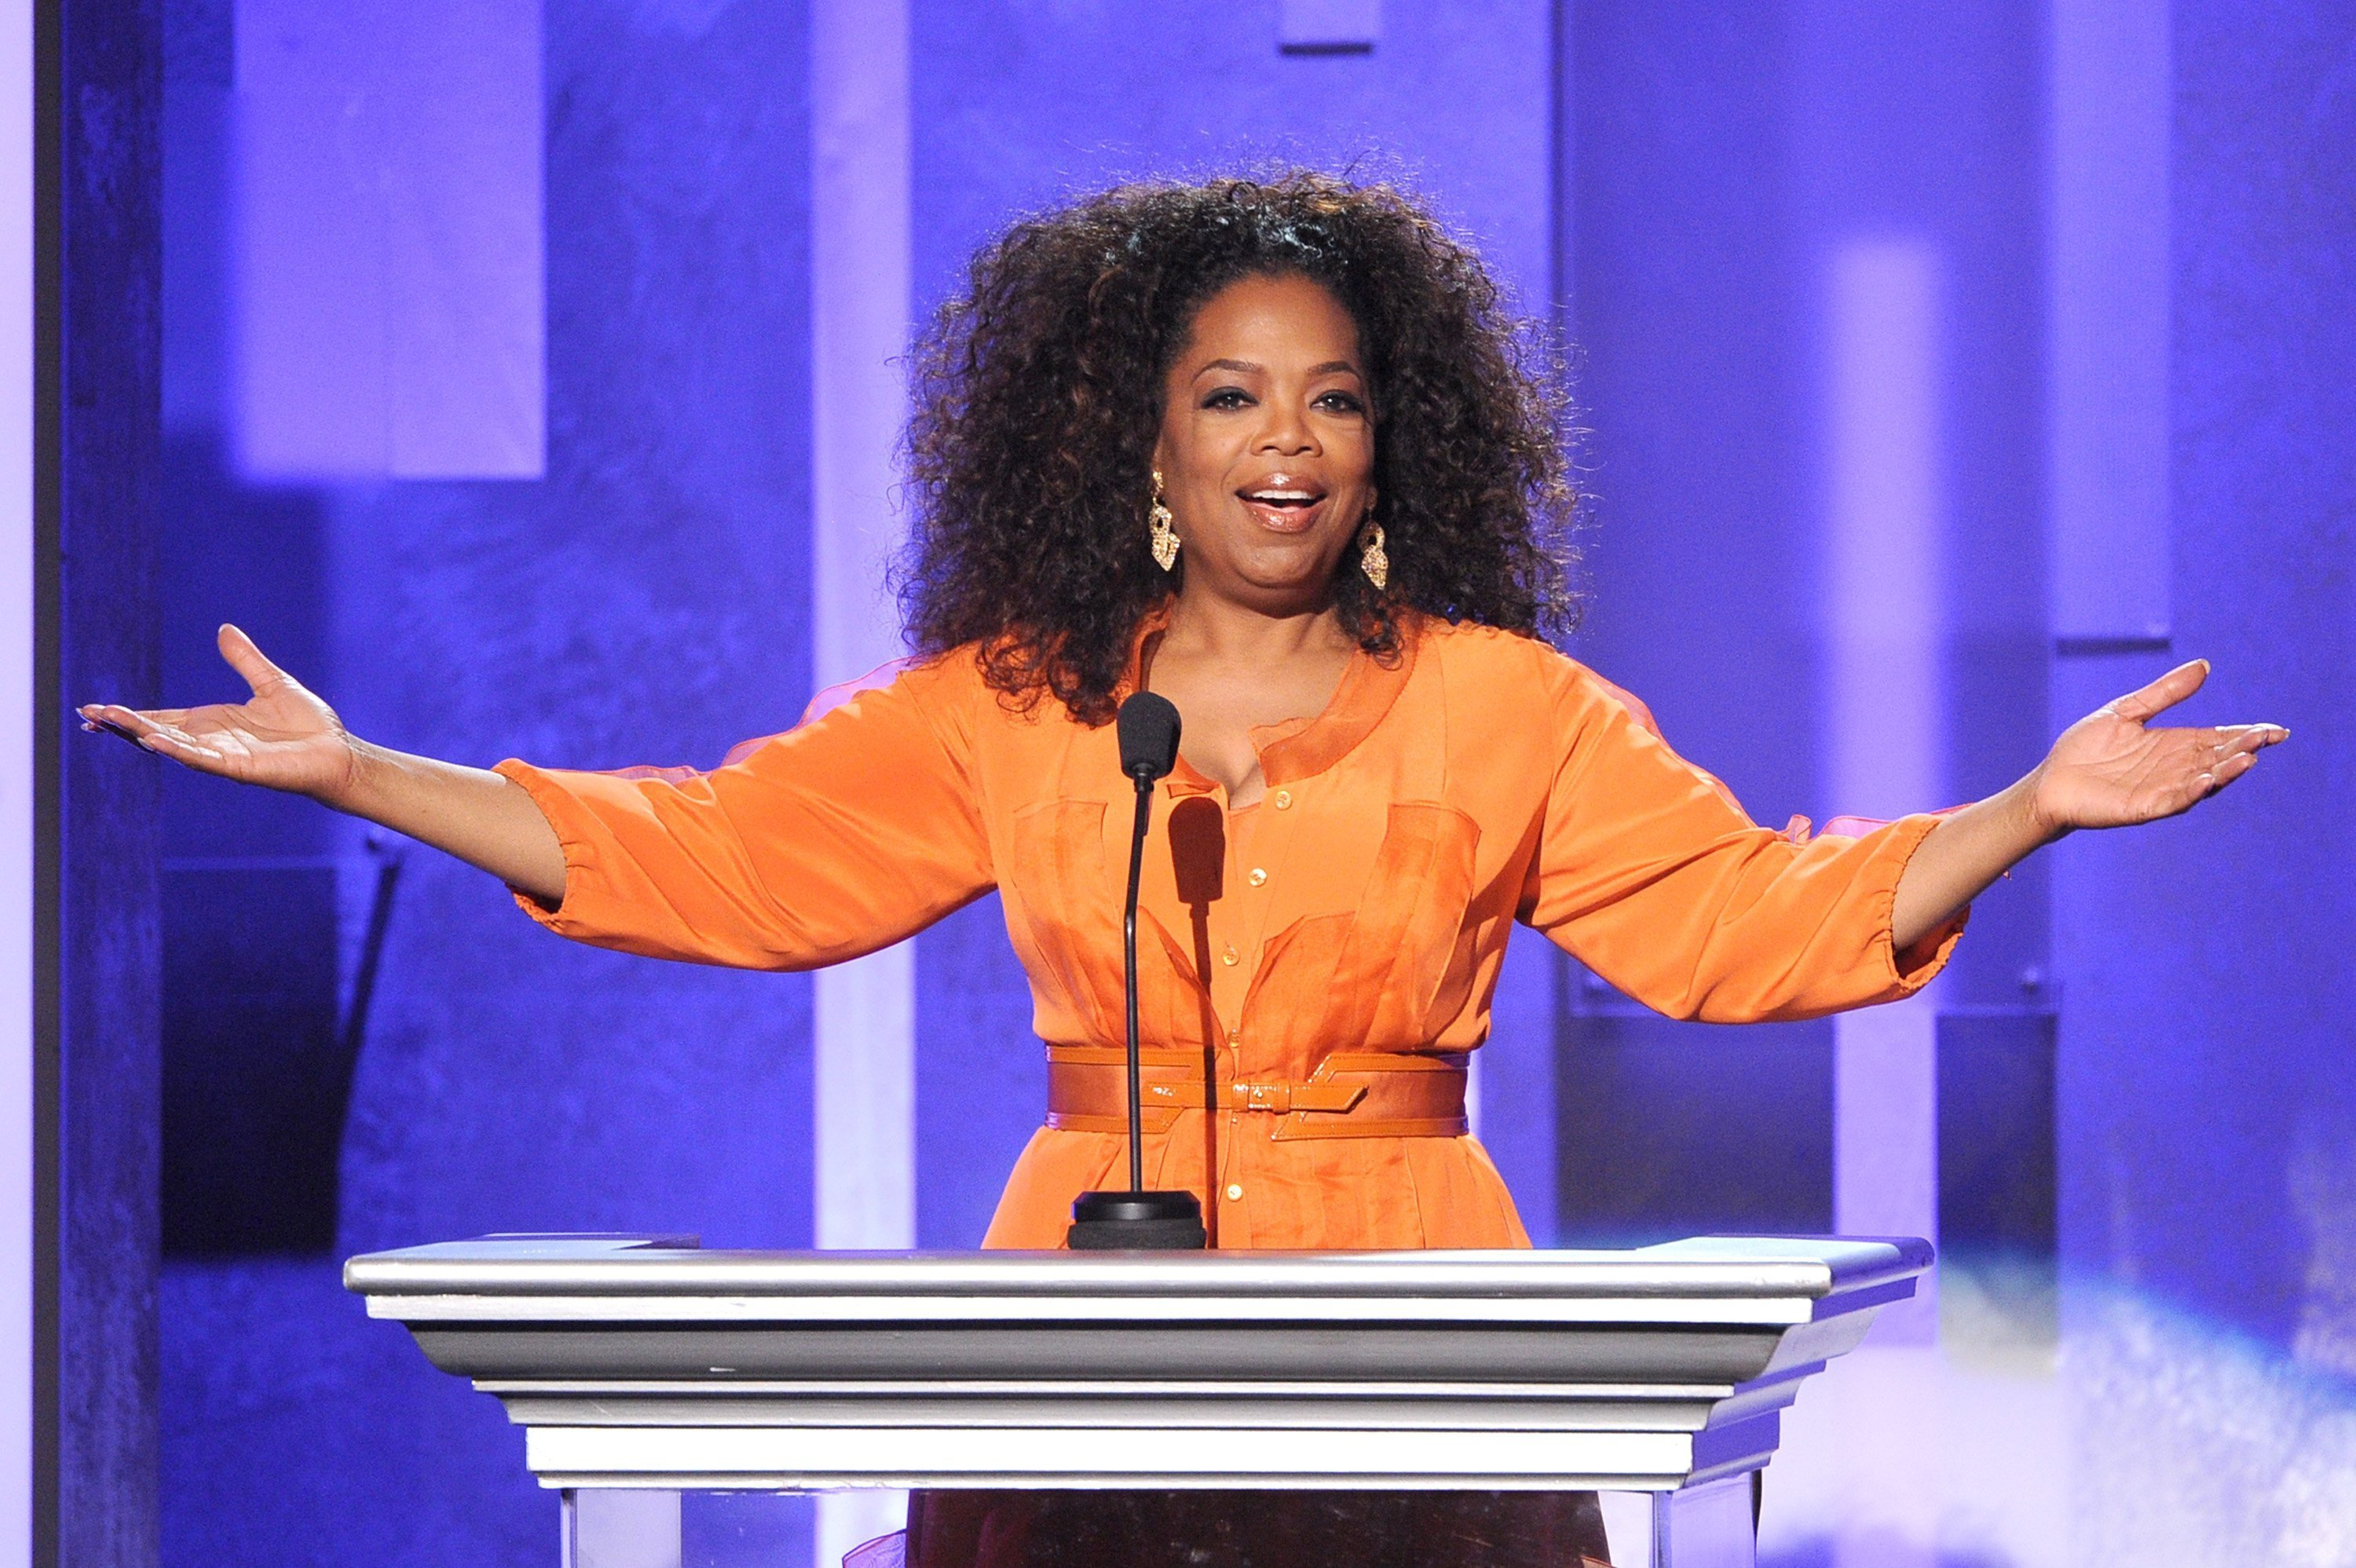 Oprah Winfrey speaks onstage during the 45th NAACP Image Awards presented by TV One at Pasadena Civic Auditorium on February 22, 2014. | Photo: Getty Images